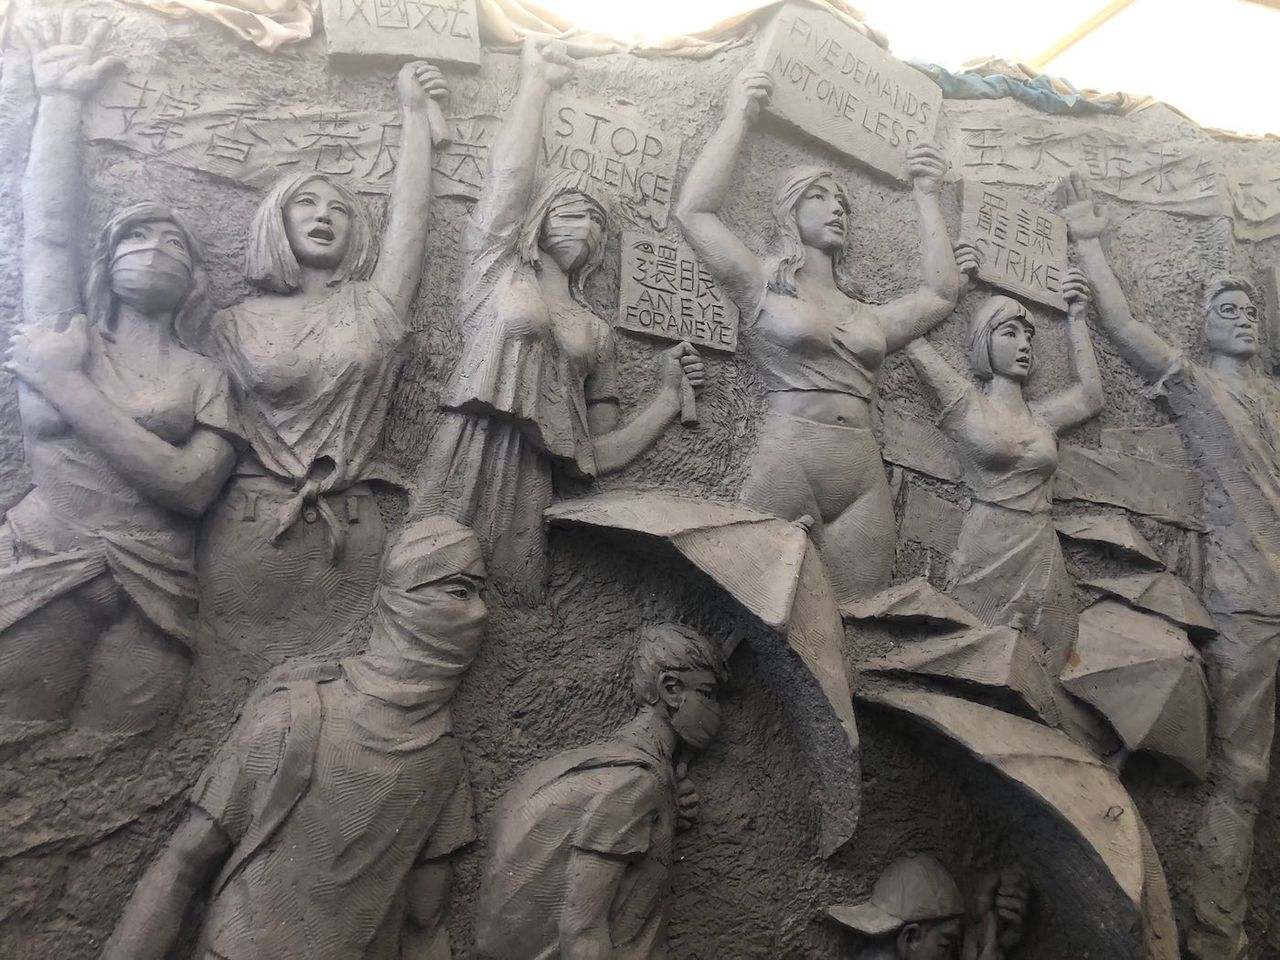 The sculpture will depict scenes including the now iconic umbrellas used in the protests Chen Weiming